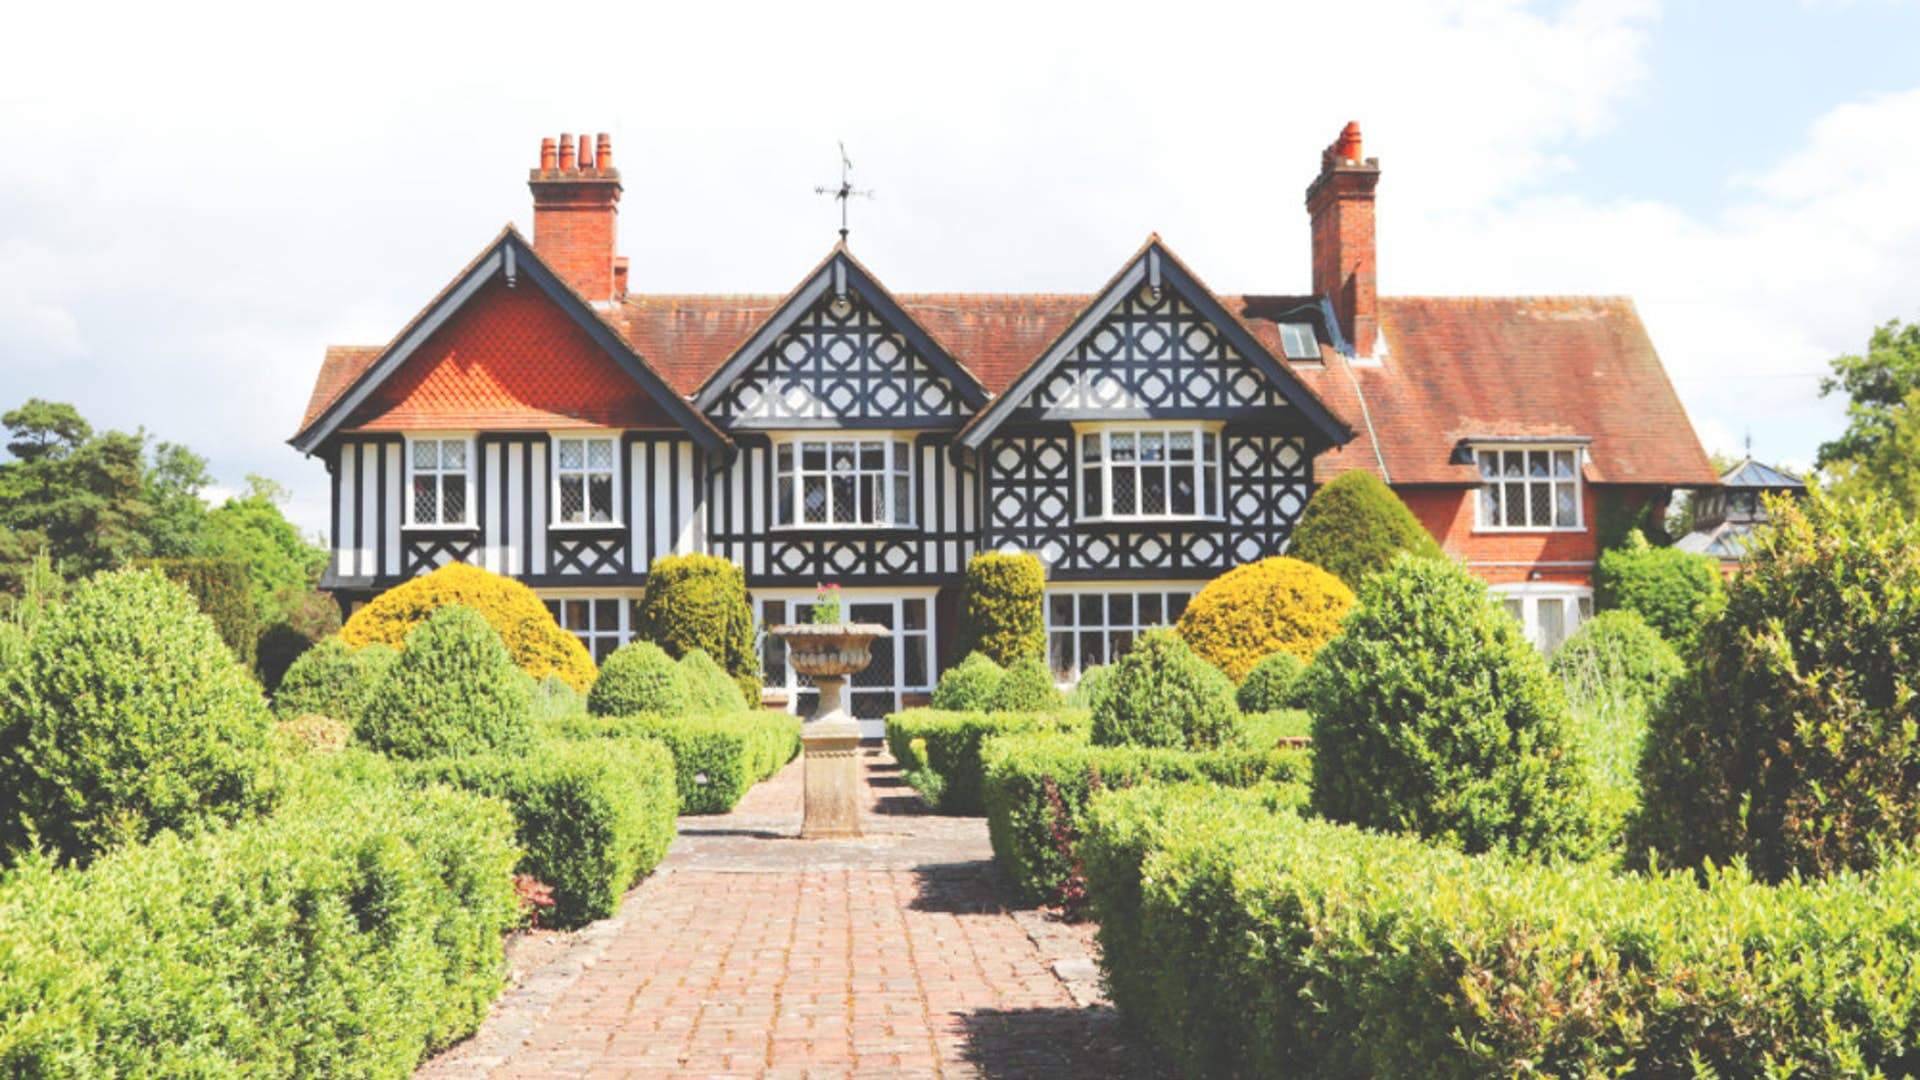 Foxlea Manor – Buckinghamshire